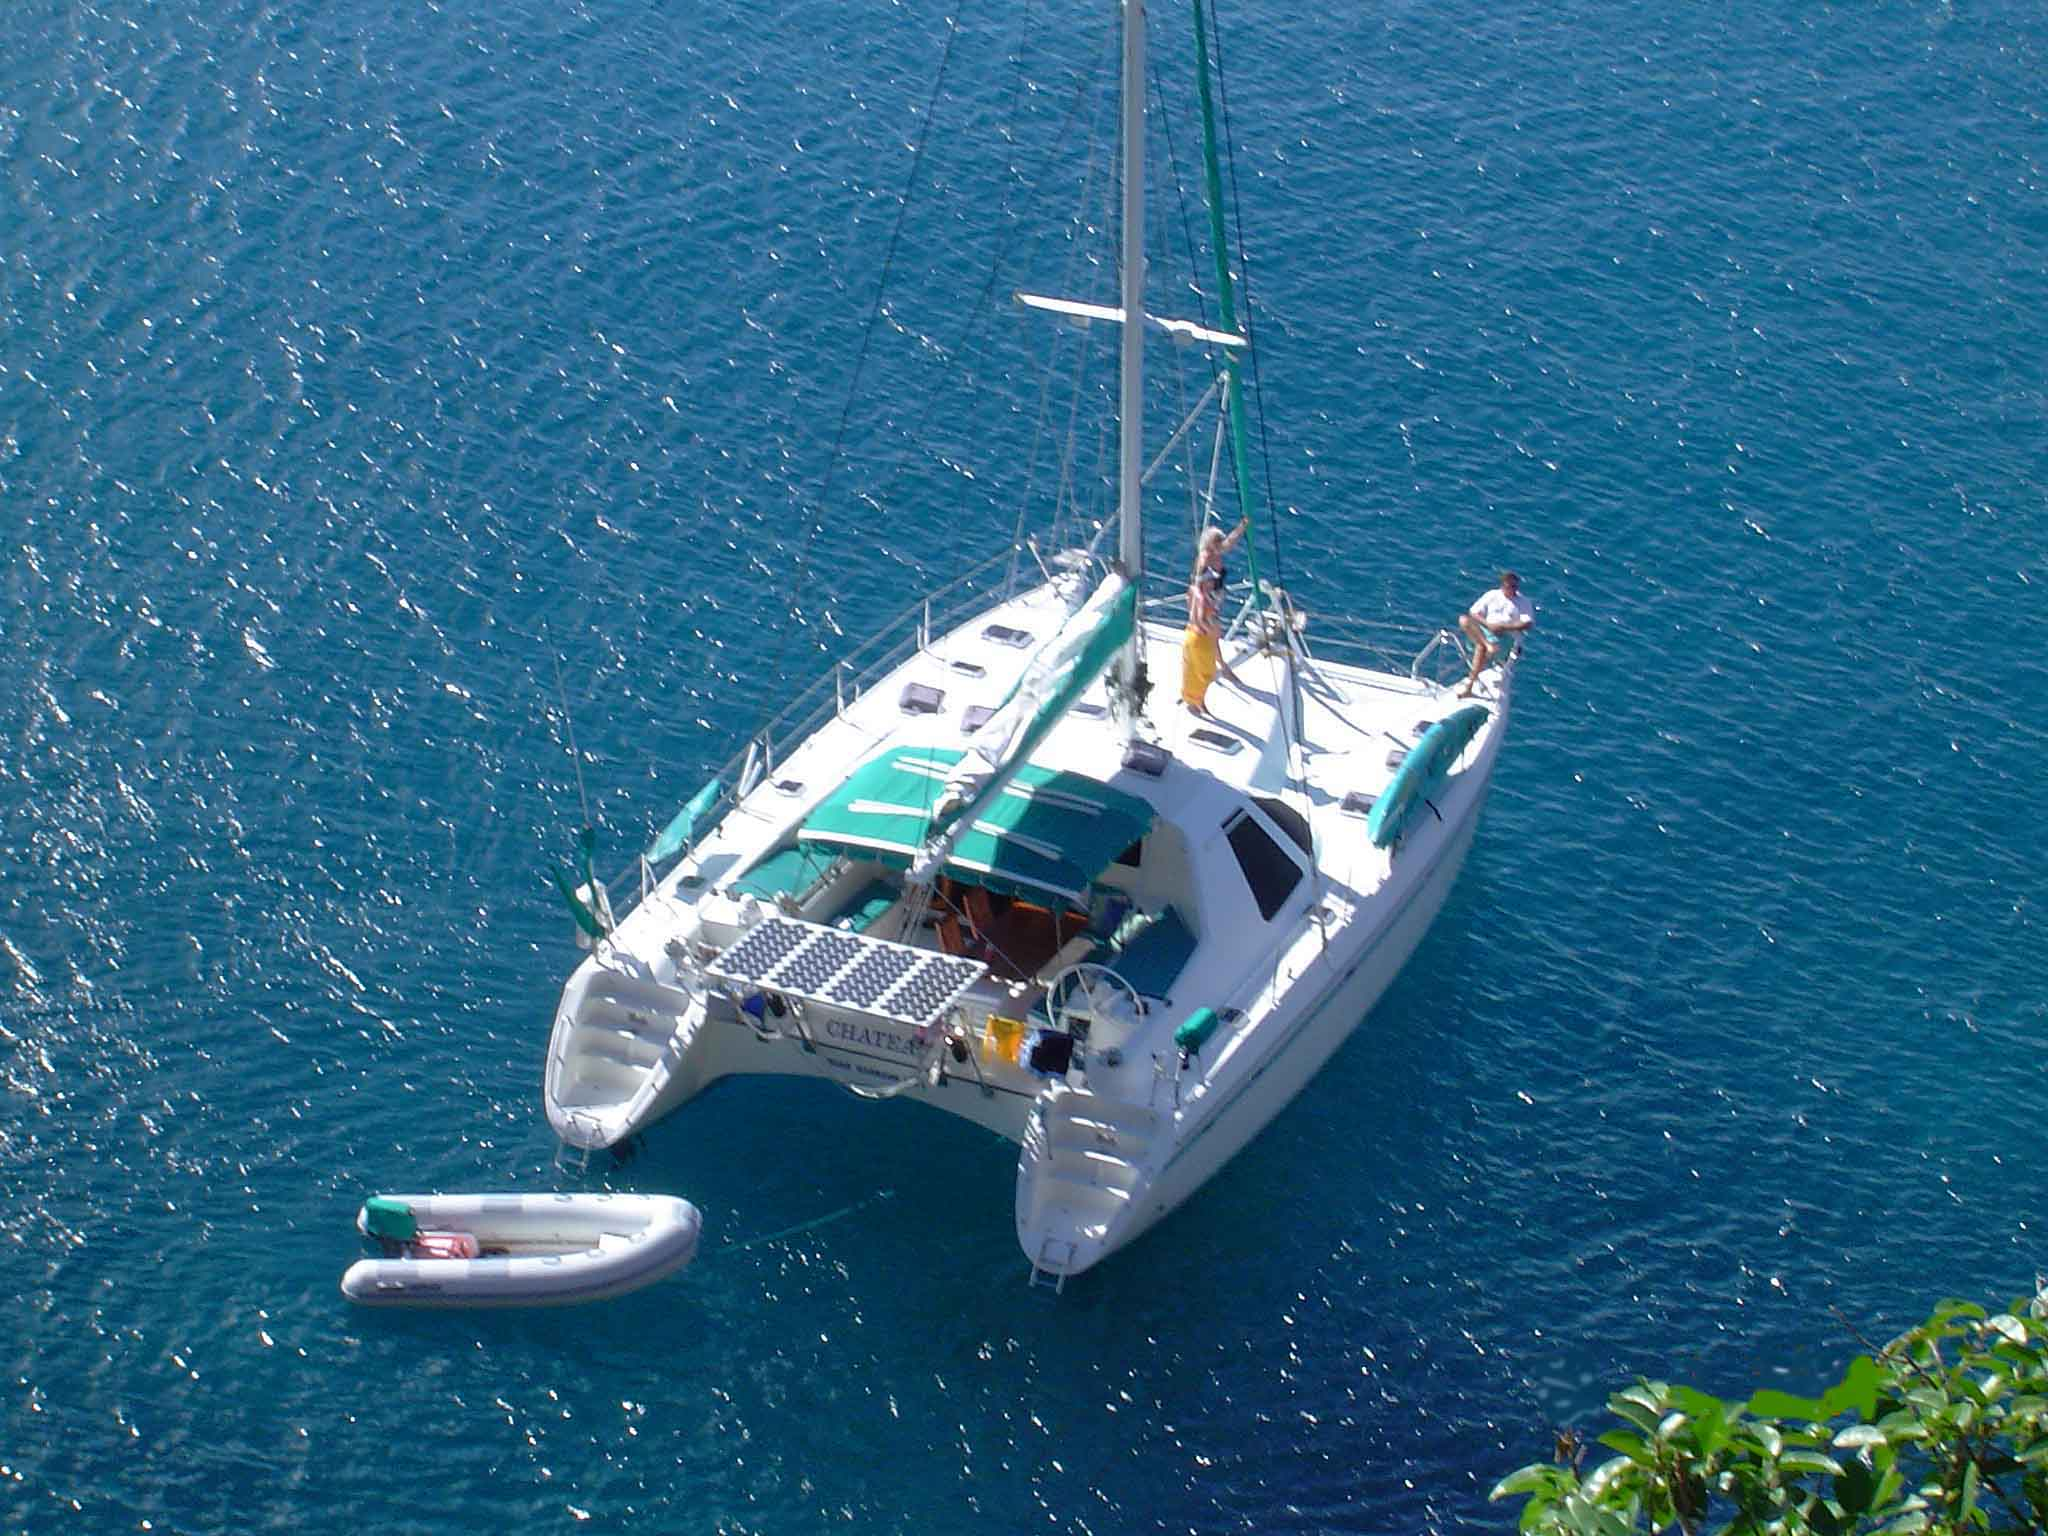 Bbq Islands For Sale >> Used Privilege 42' catamaran for sale - Chateau